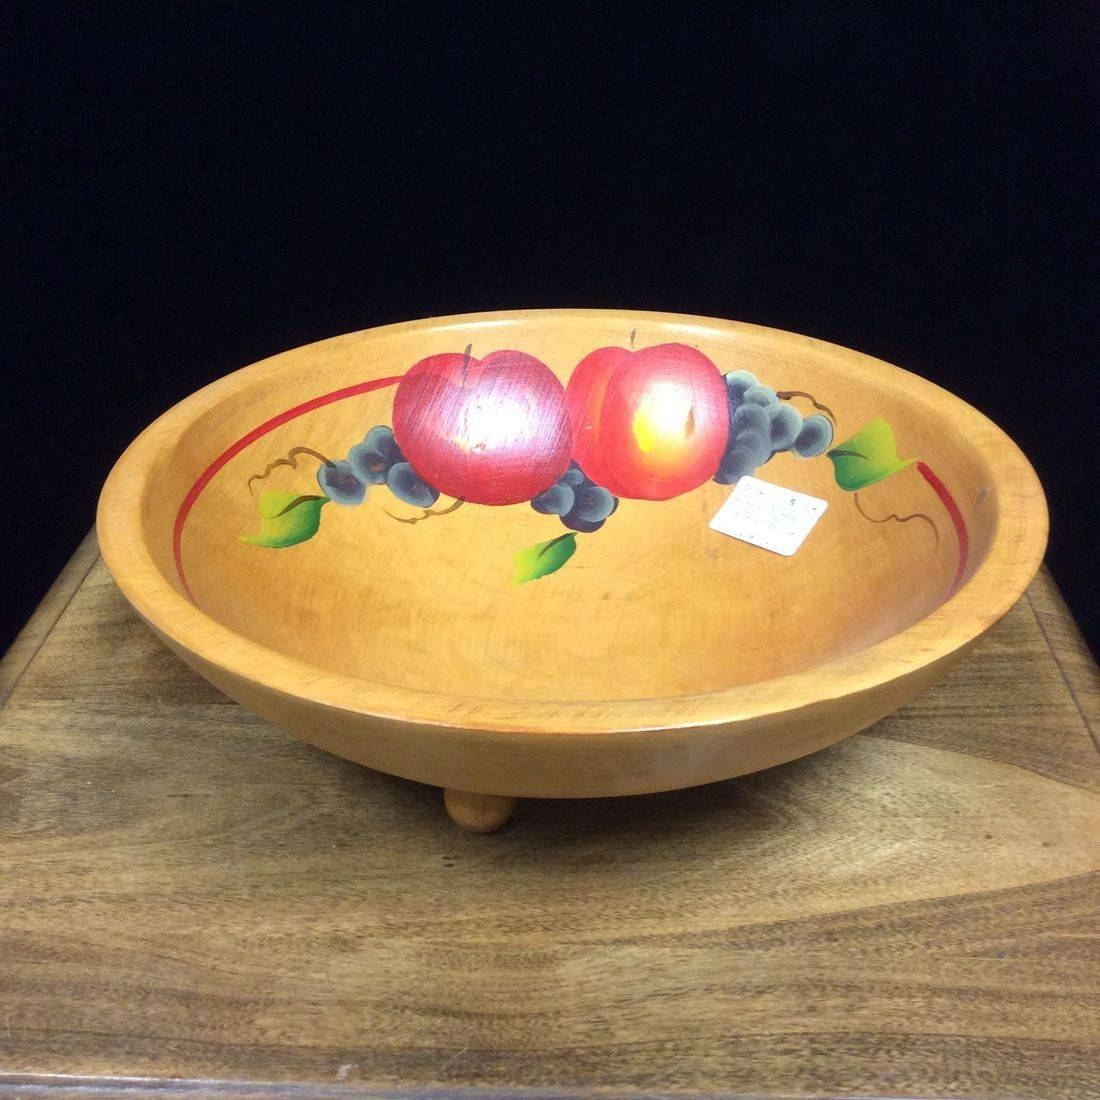 "Vintage Footed Wooden Bowl w/Fruit Design (semi-oval) 11-1/4"" X 10-1/2""d. X 3-1/2""h.  $17.00"